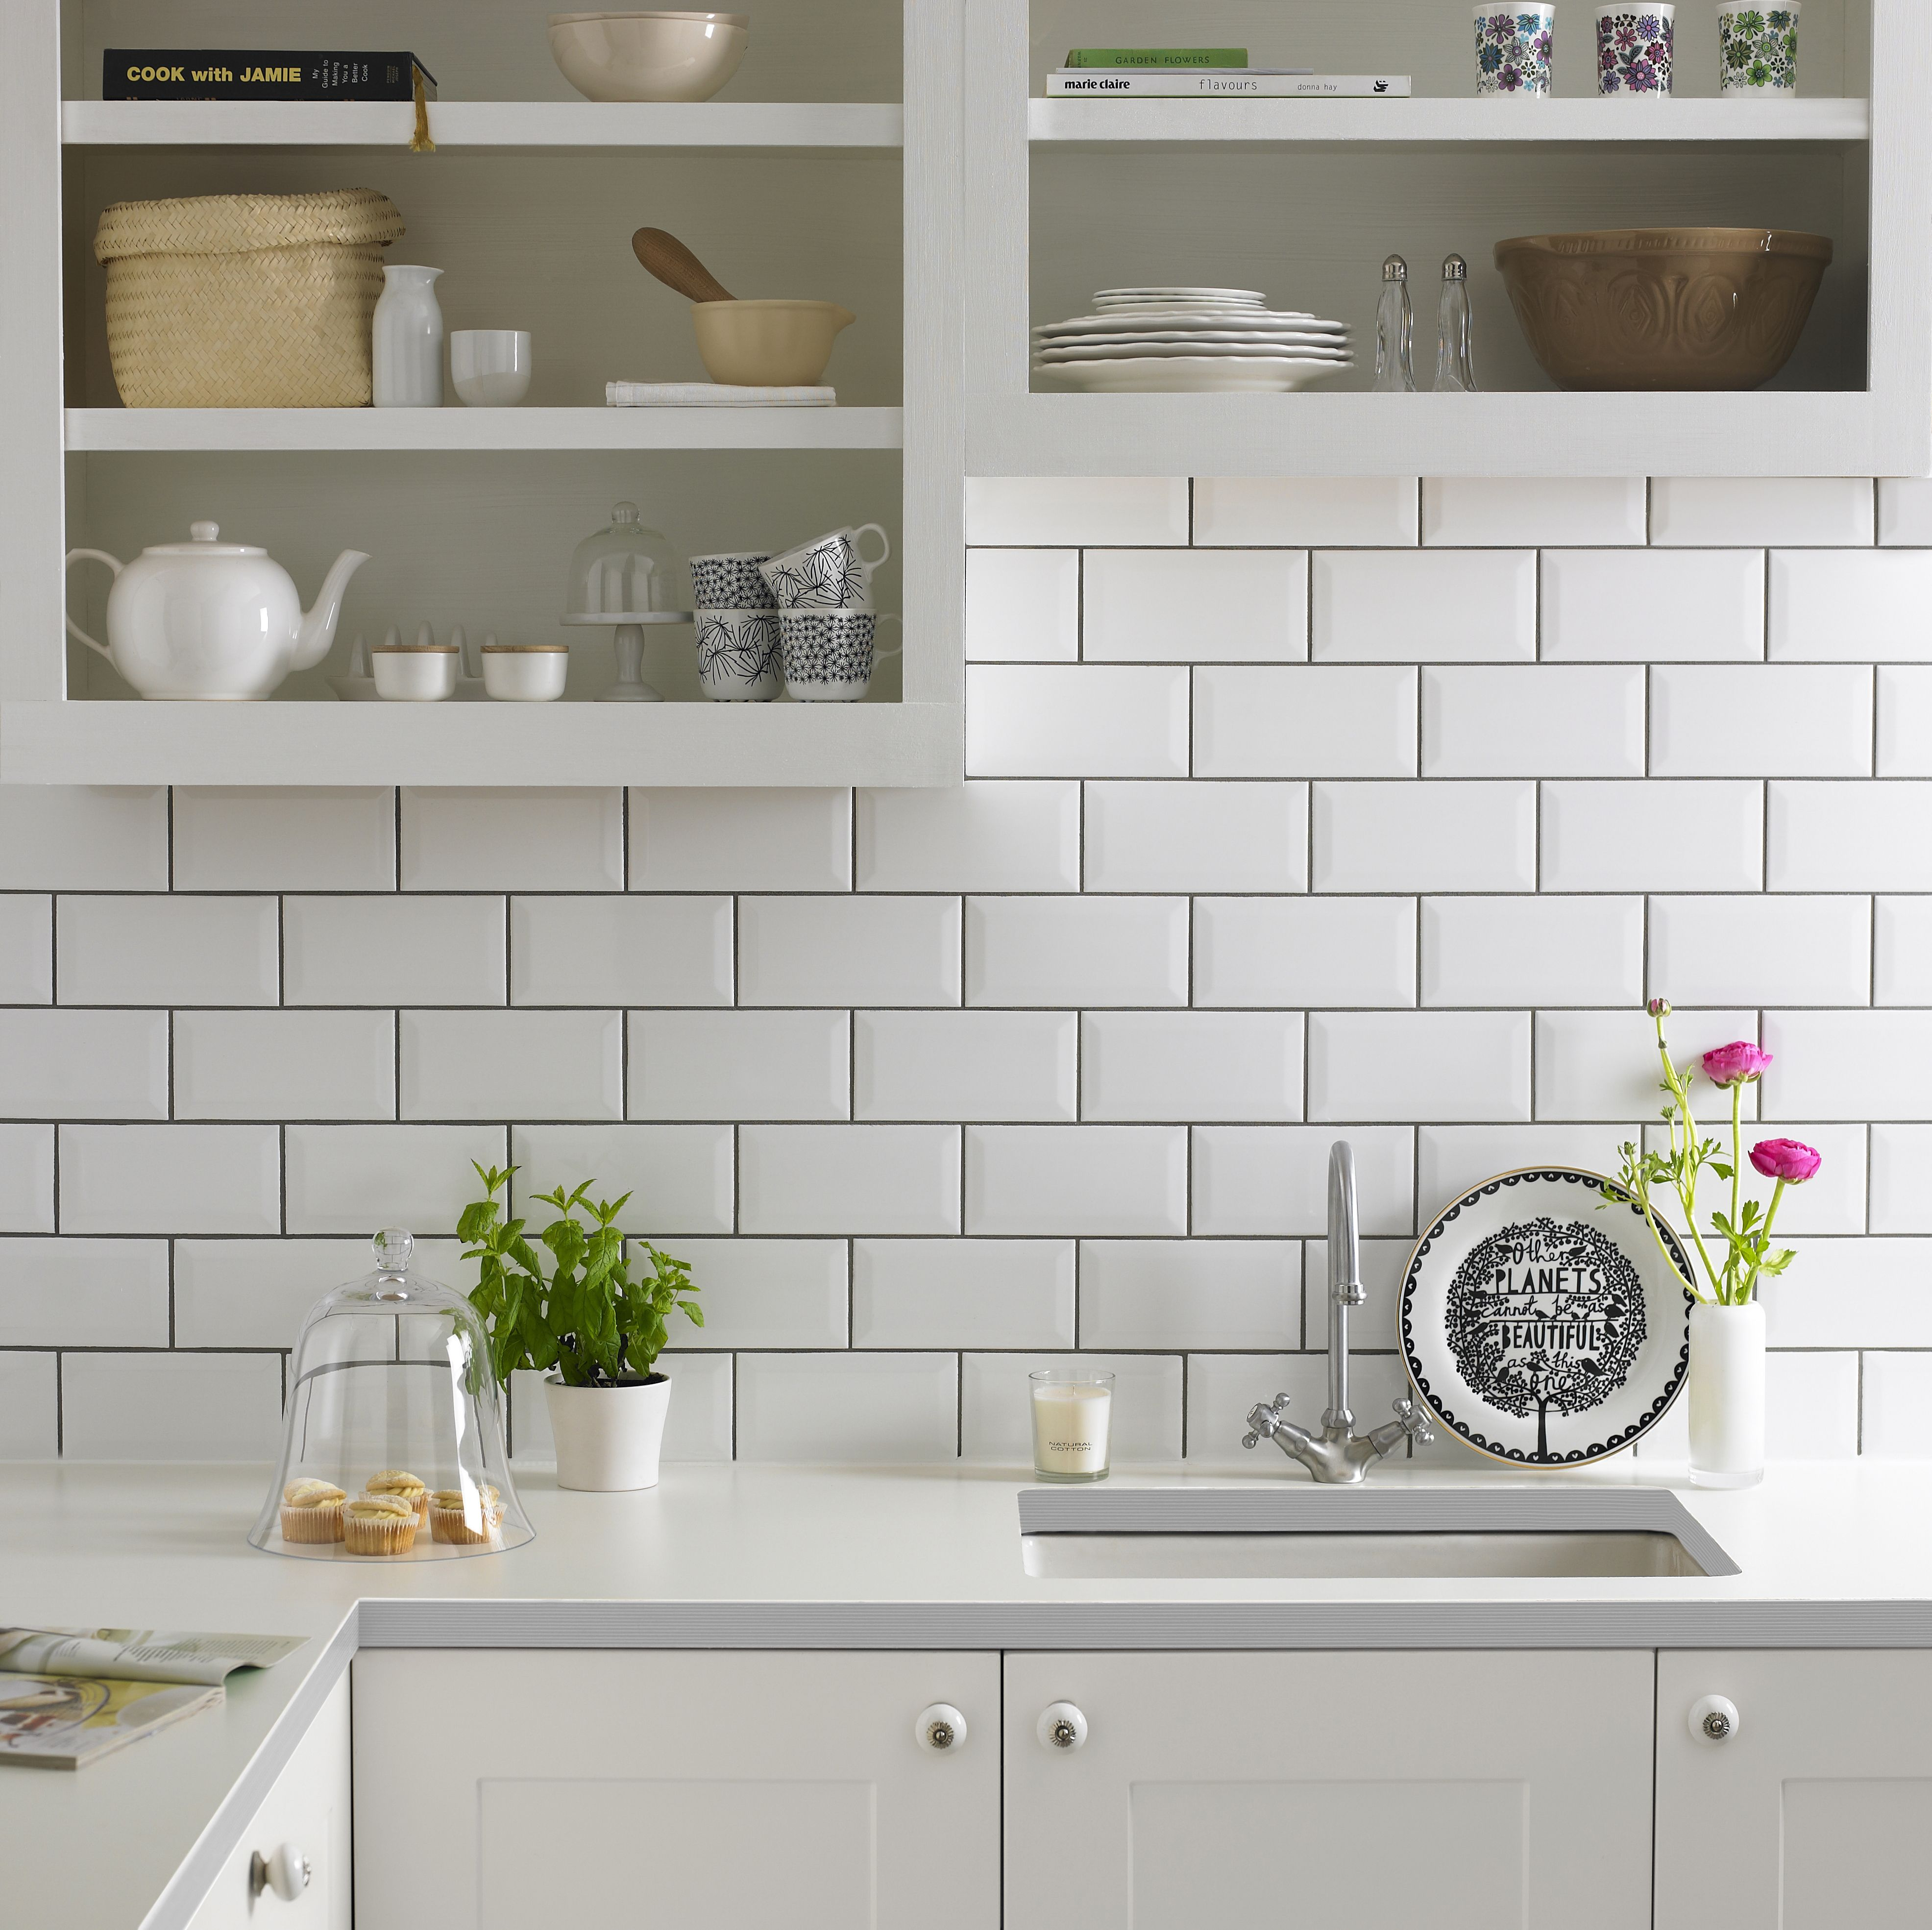 Metro White | kitchen decor | Pinterest | Cocinas bonitas, Bonitas y ...